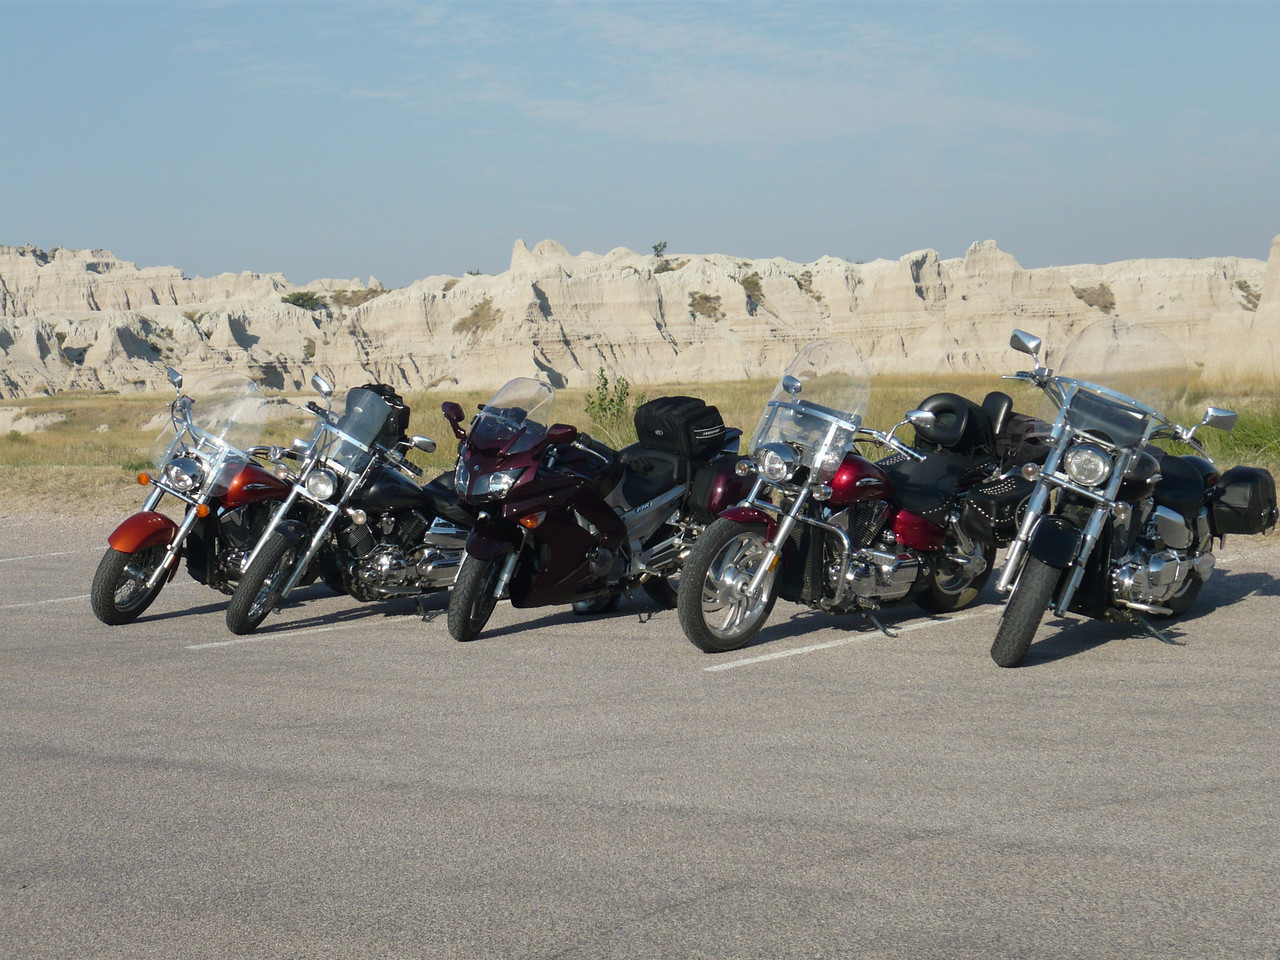 All 5 bikes together. A rare photo, they were all sitting still.<br /> <br /> 3 VTX 1300's, 1 VStar 1100, and Deans FJR 1300.